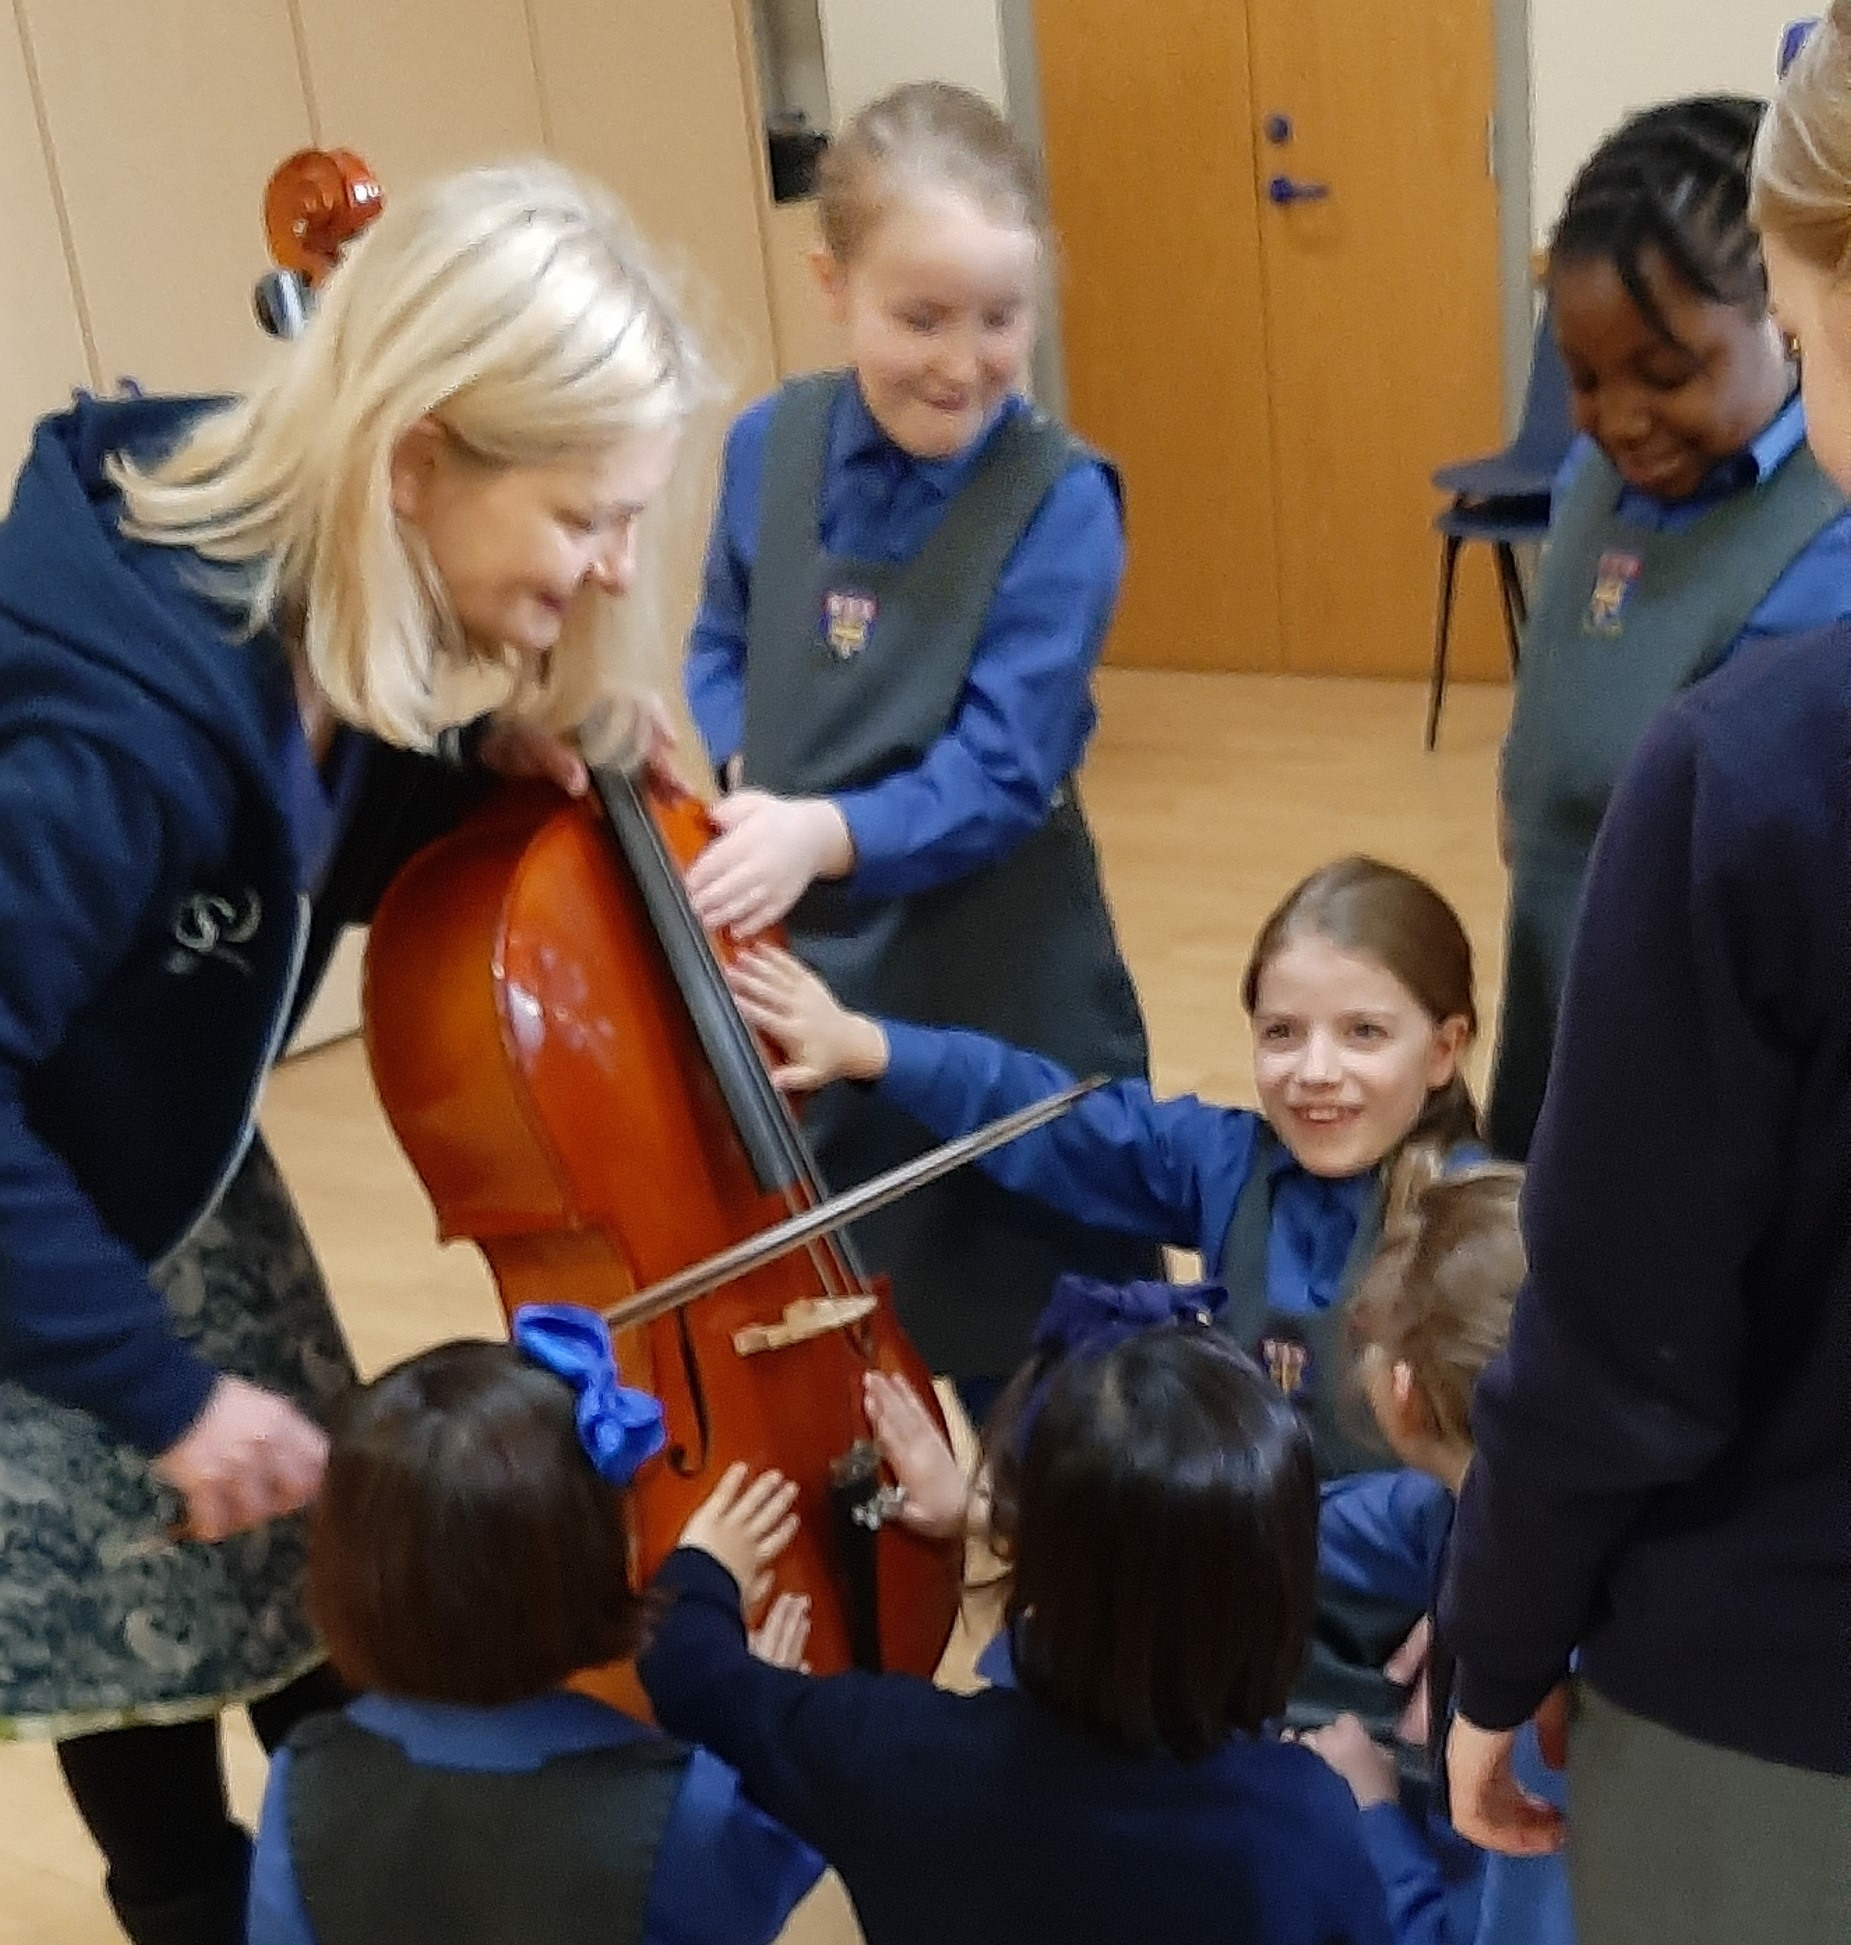 Workshop by musicians from the Royal Scottish National Orchestra